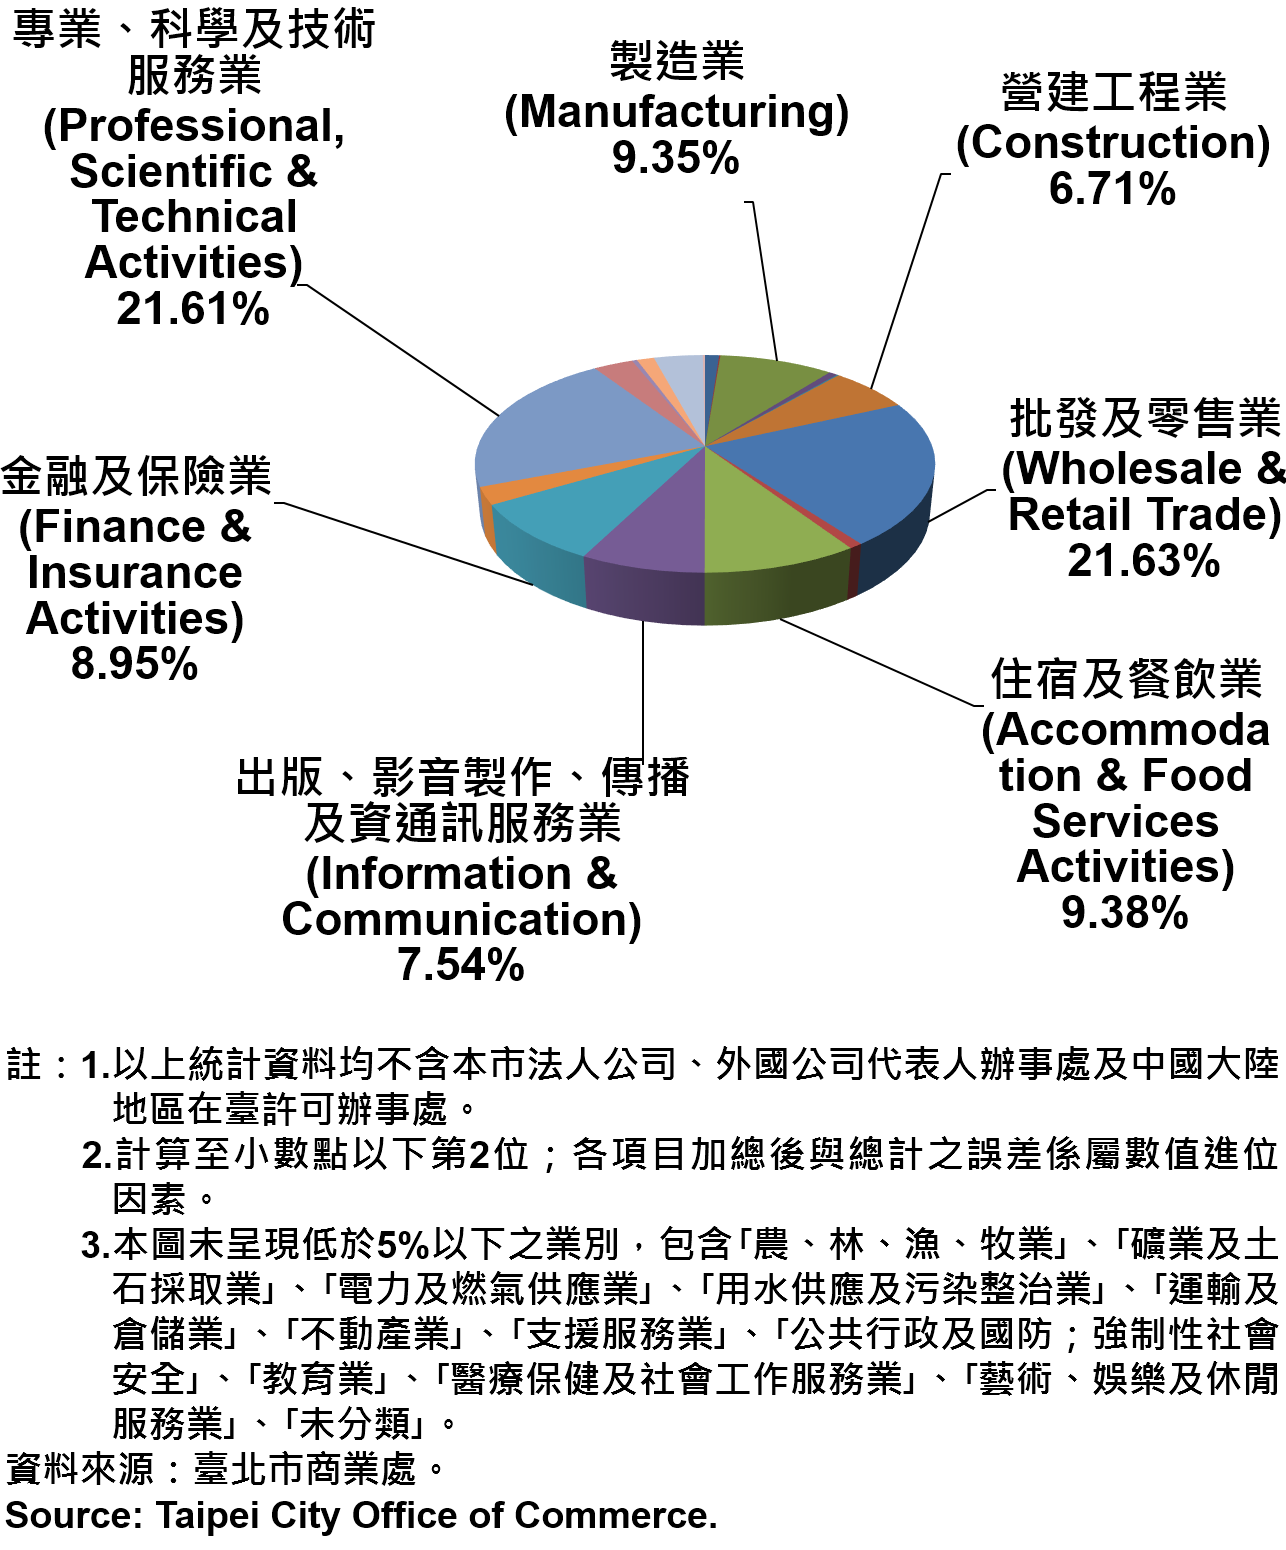 臺北市新創公司行號之業別分布情形—依新增家數—2018 Newly Registered Companies in Taipei City by Industry- Number of Incorporation—2018